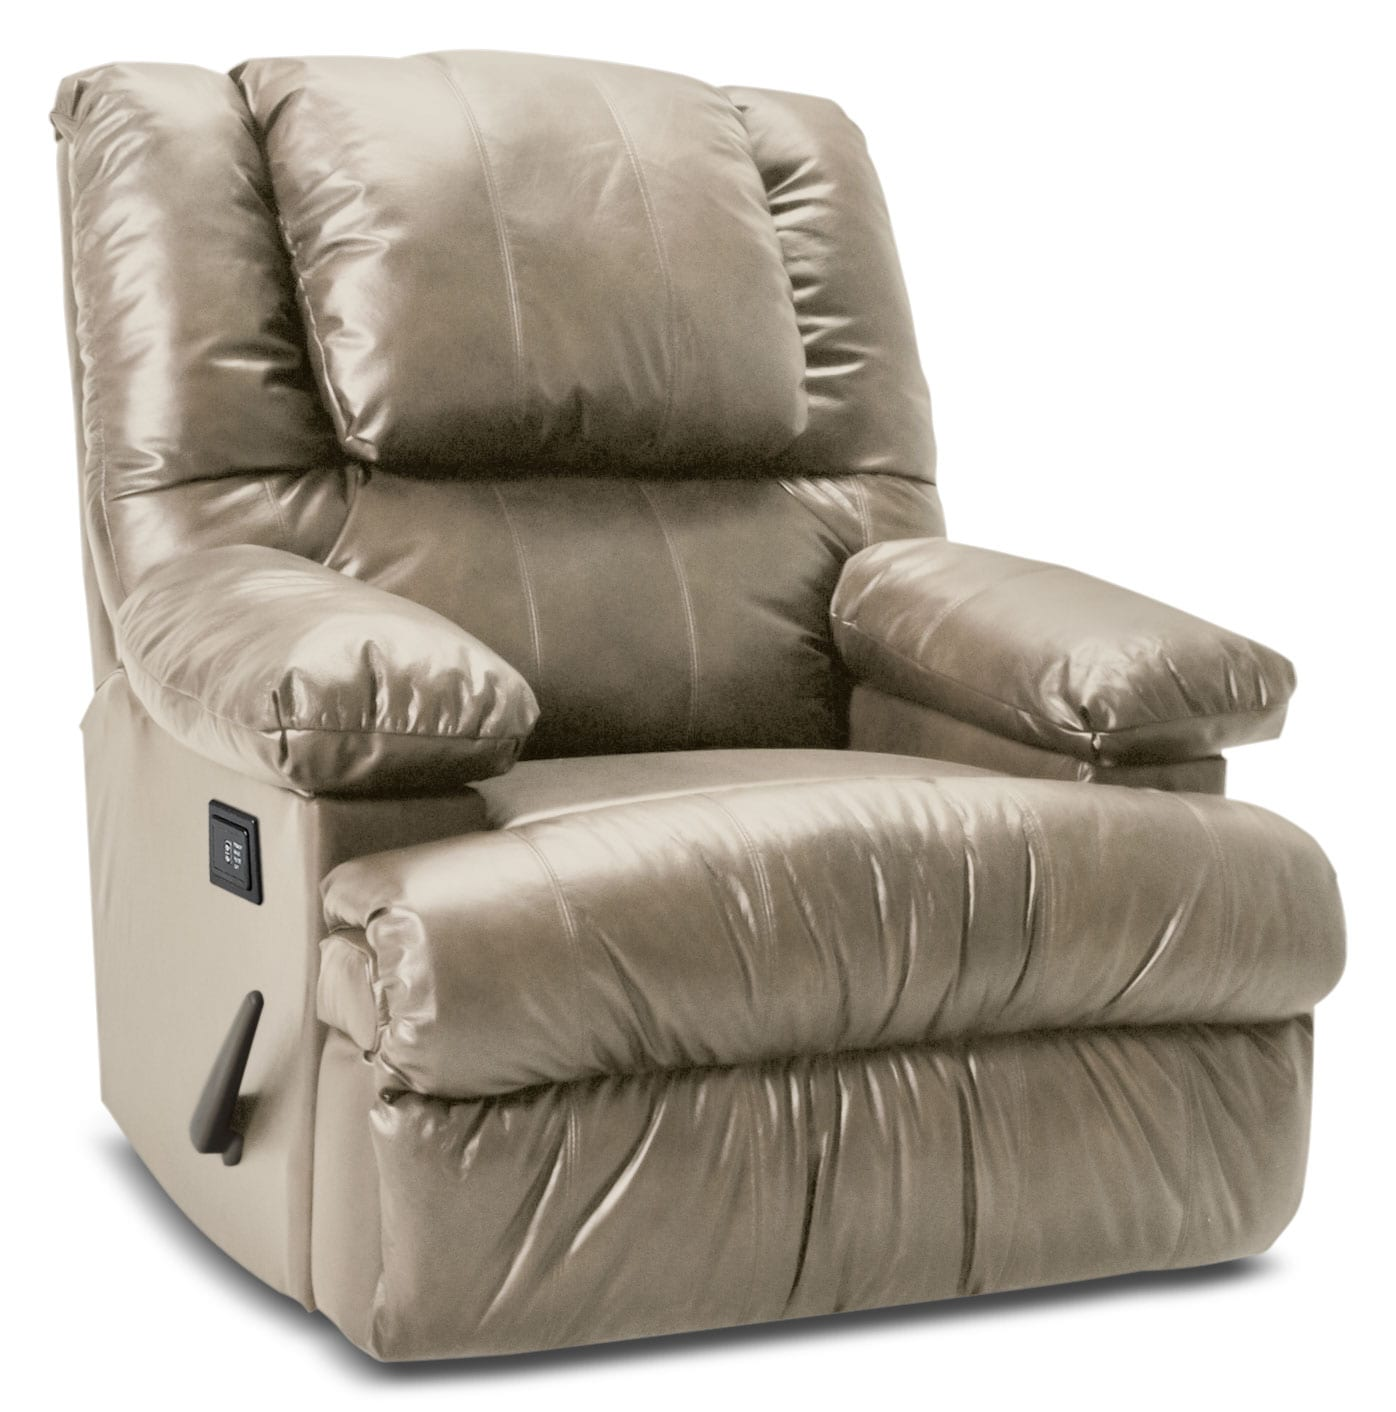 Living Room Furniture - Designed2B Recliner 5598 Bonded Leather Massage Recliner with Storage Arms - Putty